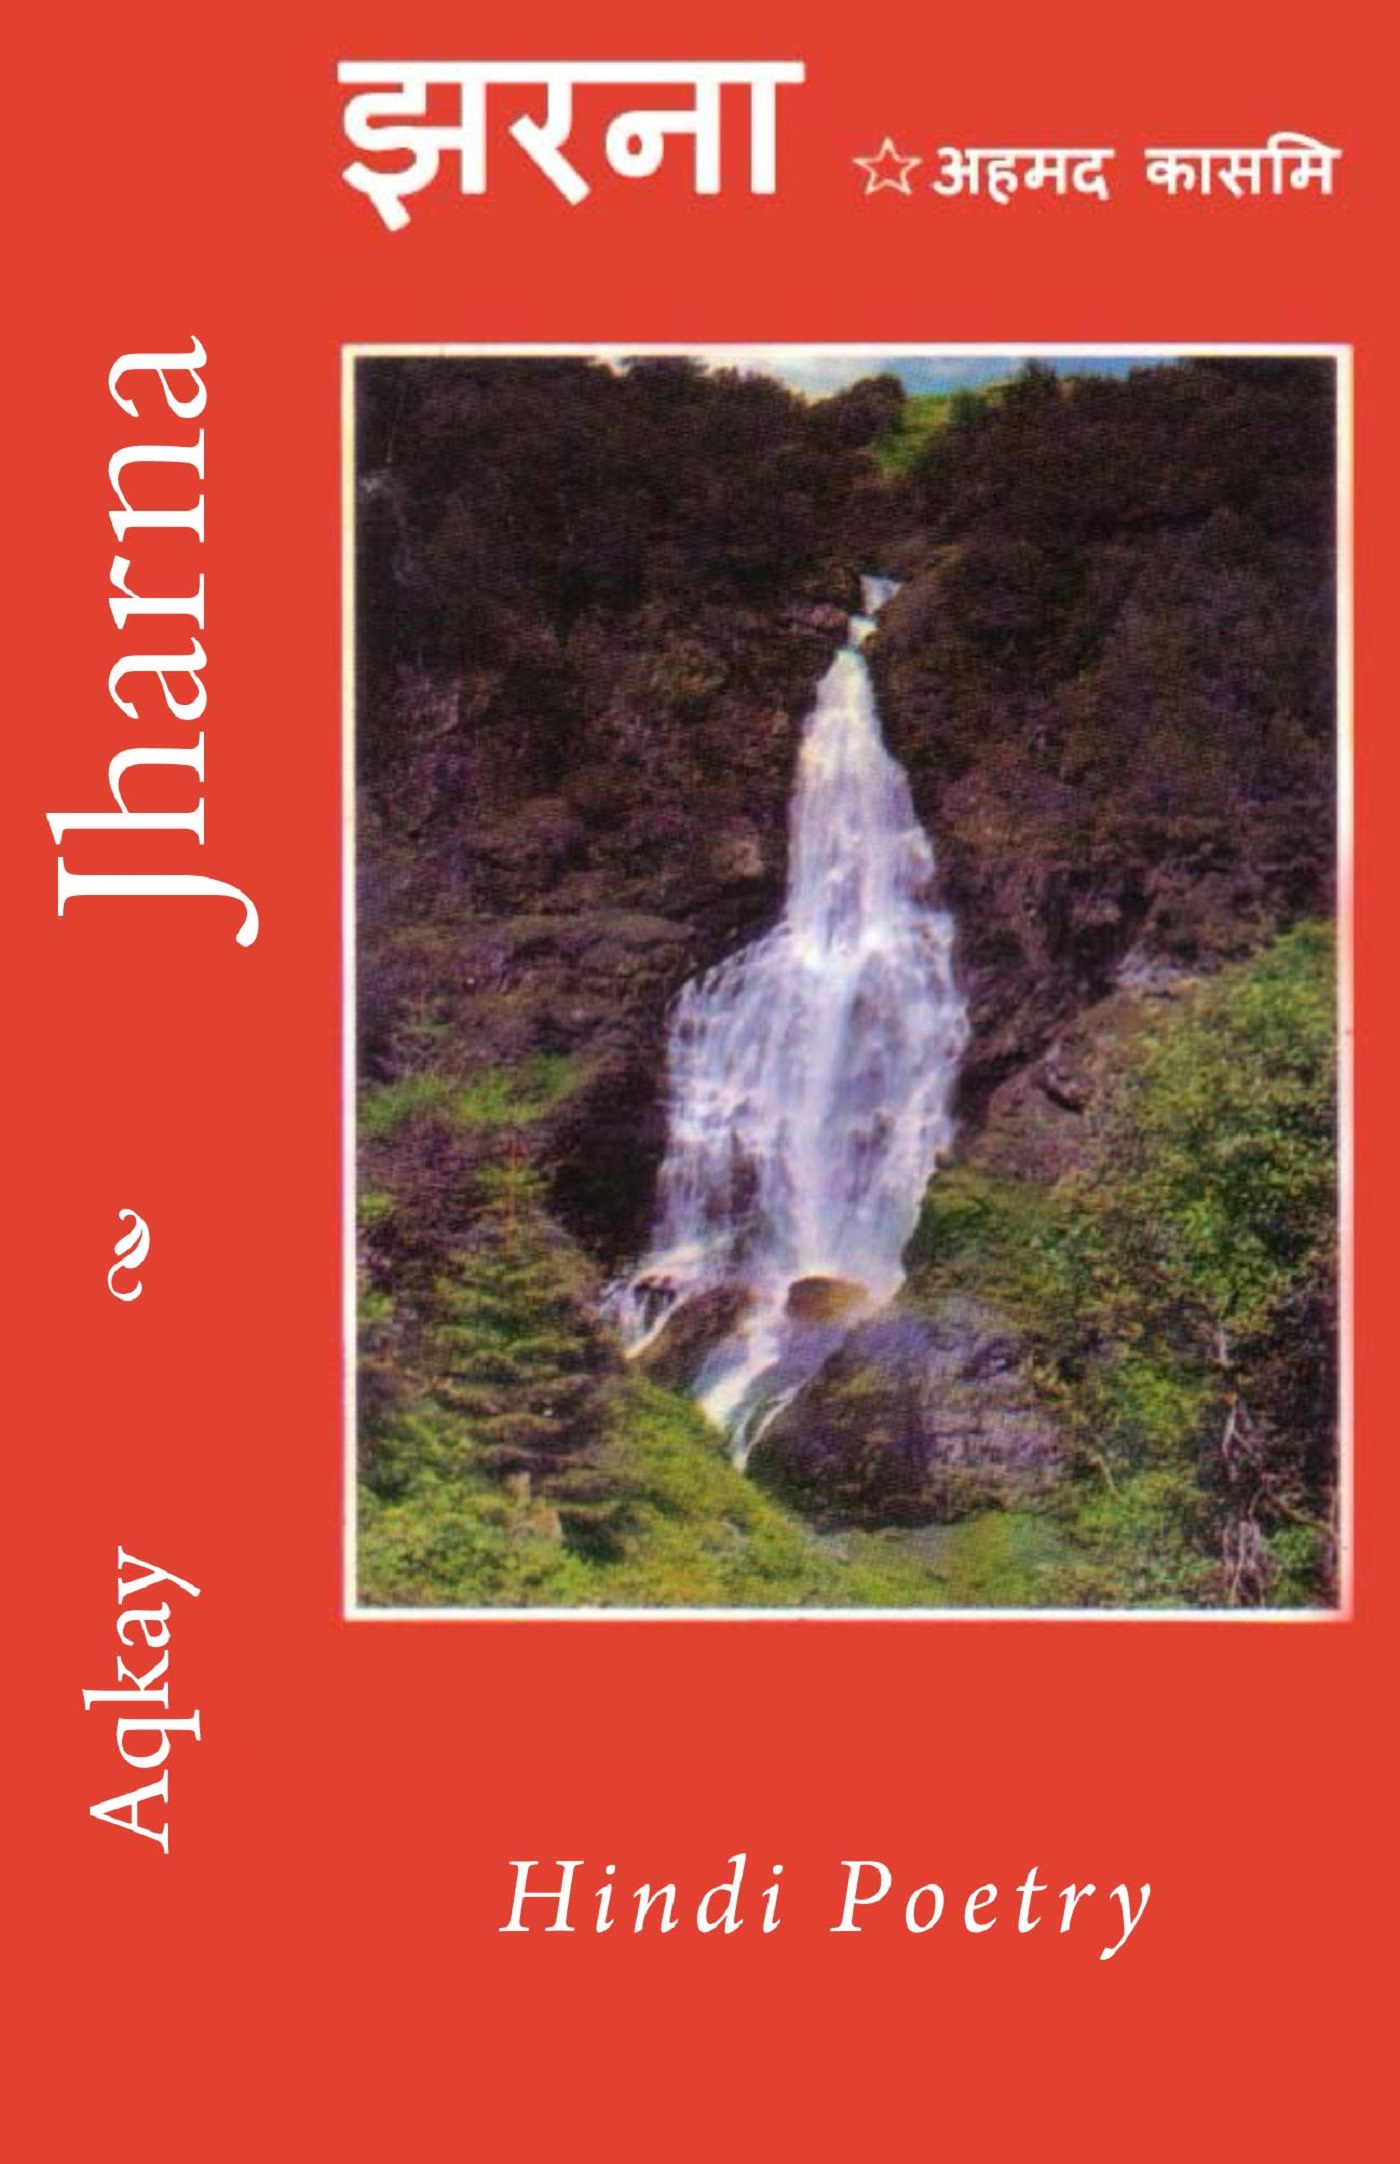 झरना Jharna - Hindi Poetry, an Ebook by Aqkay